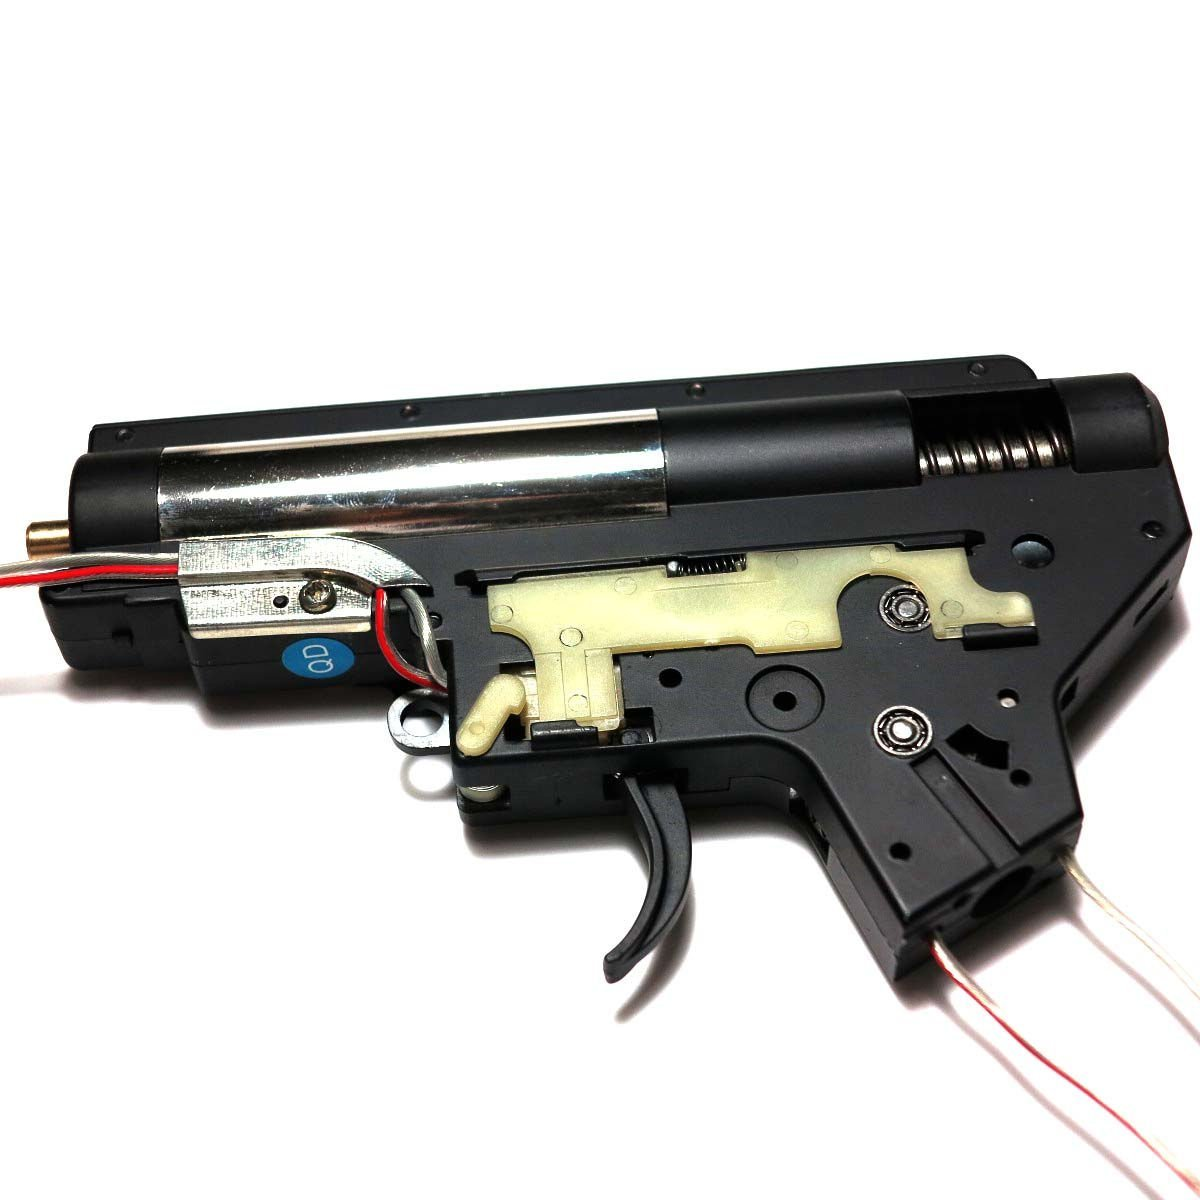 AEG Airsoft Wargame Shooting Gear E&C 8mm Complete QD Transform M4 Gearbox Version 2 Front Line